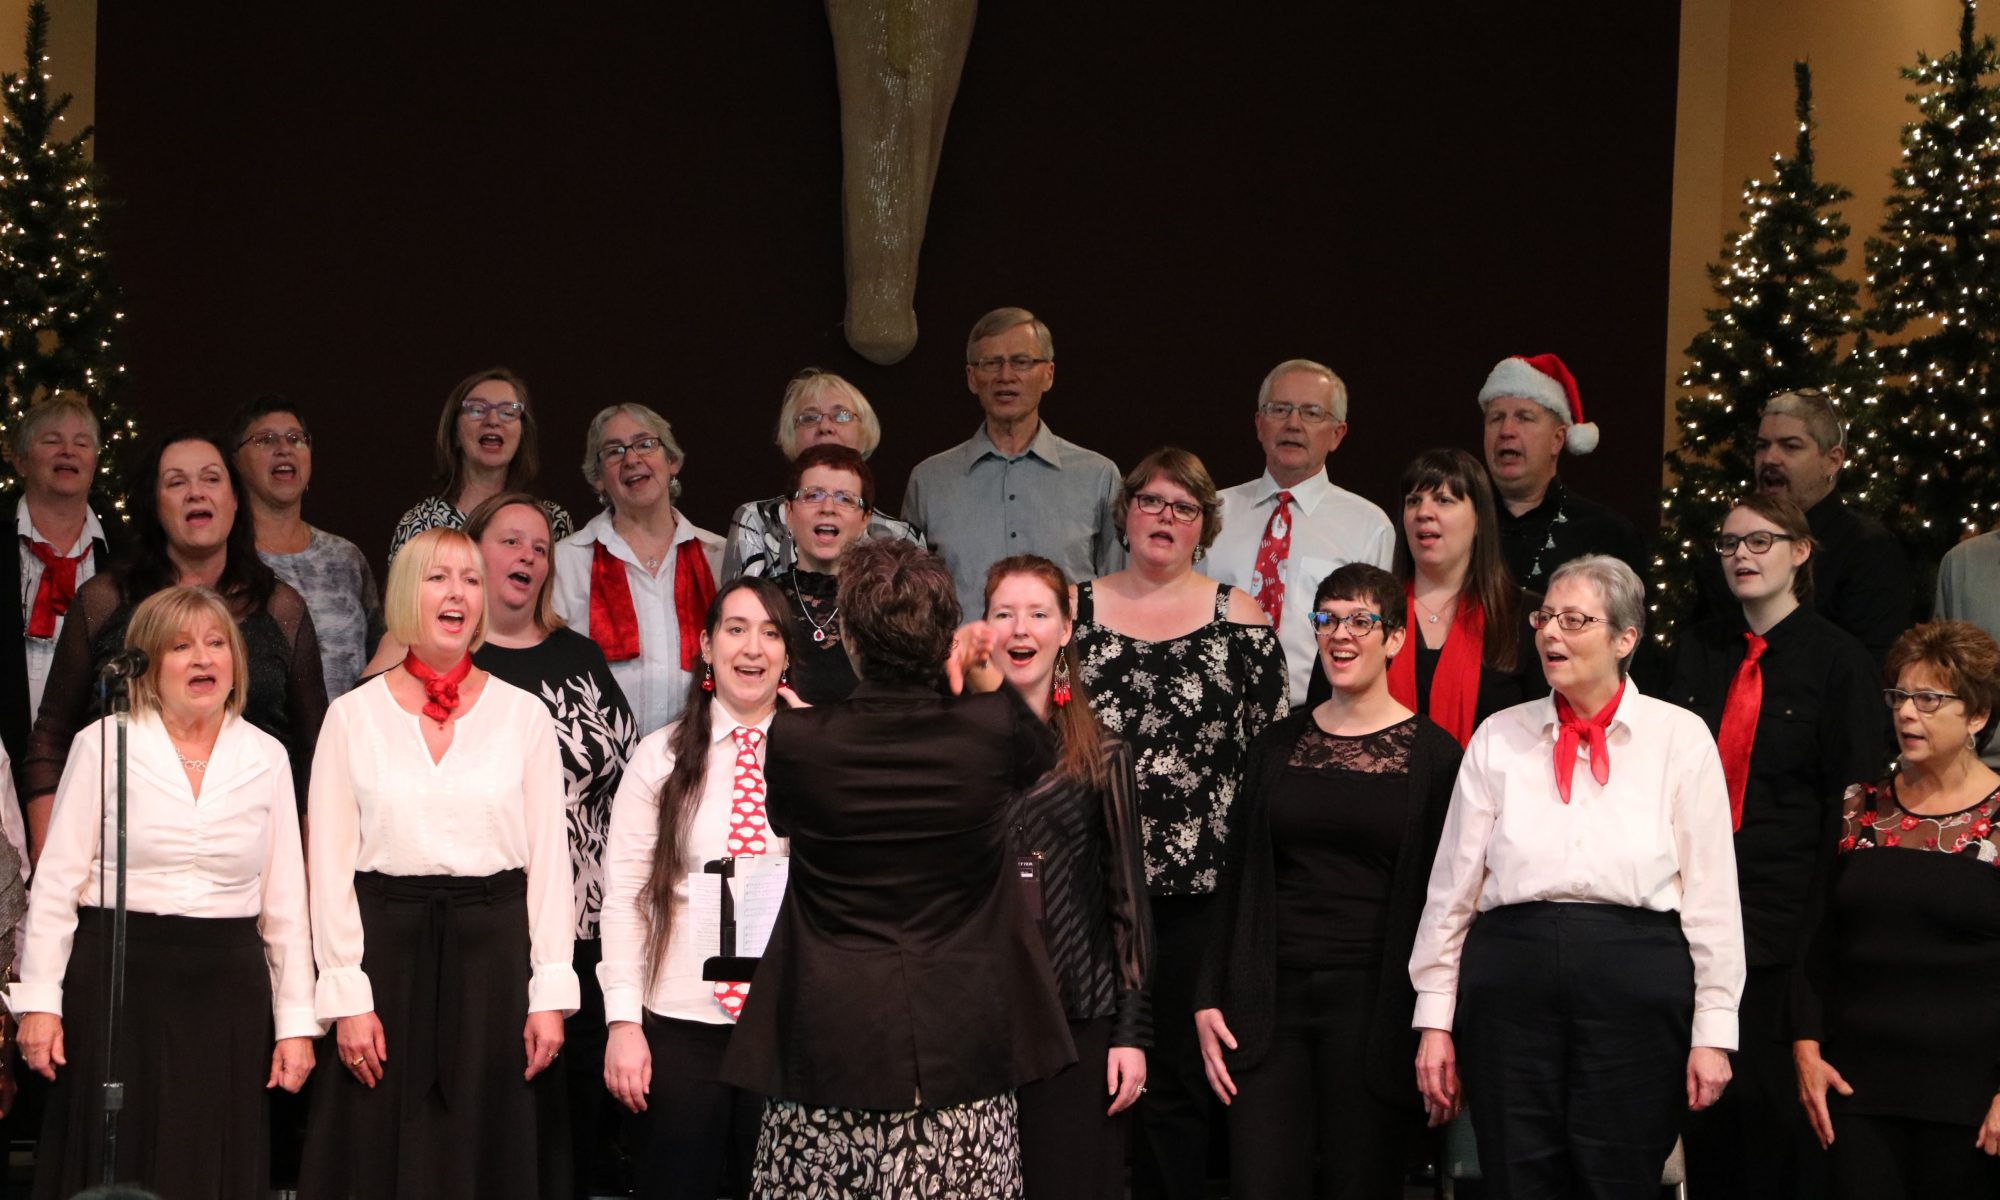 The Allegra Singers